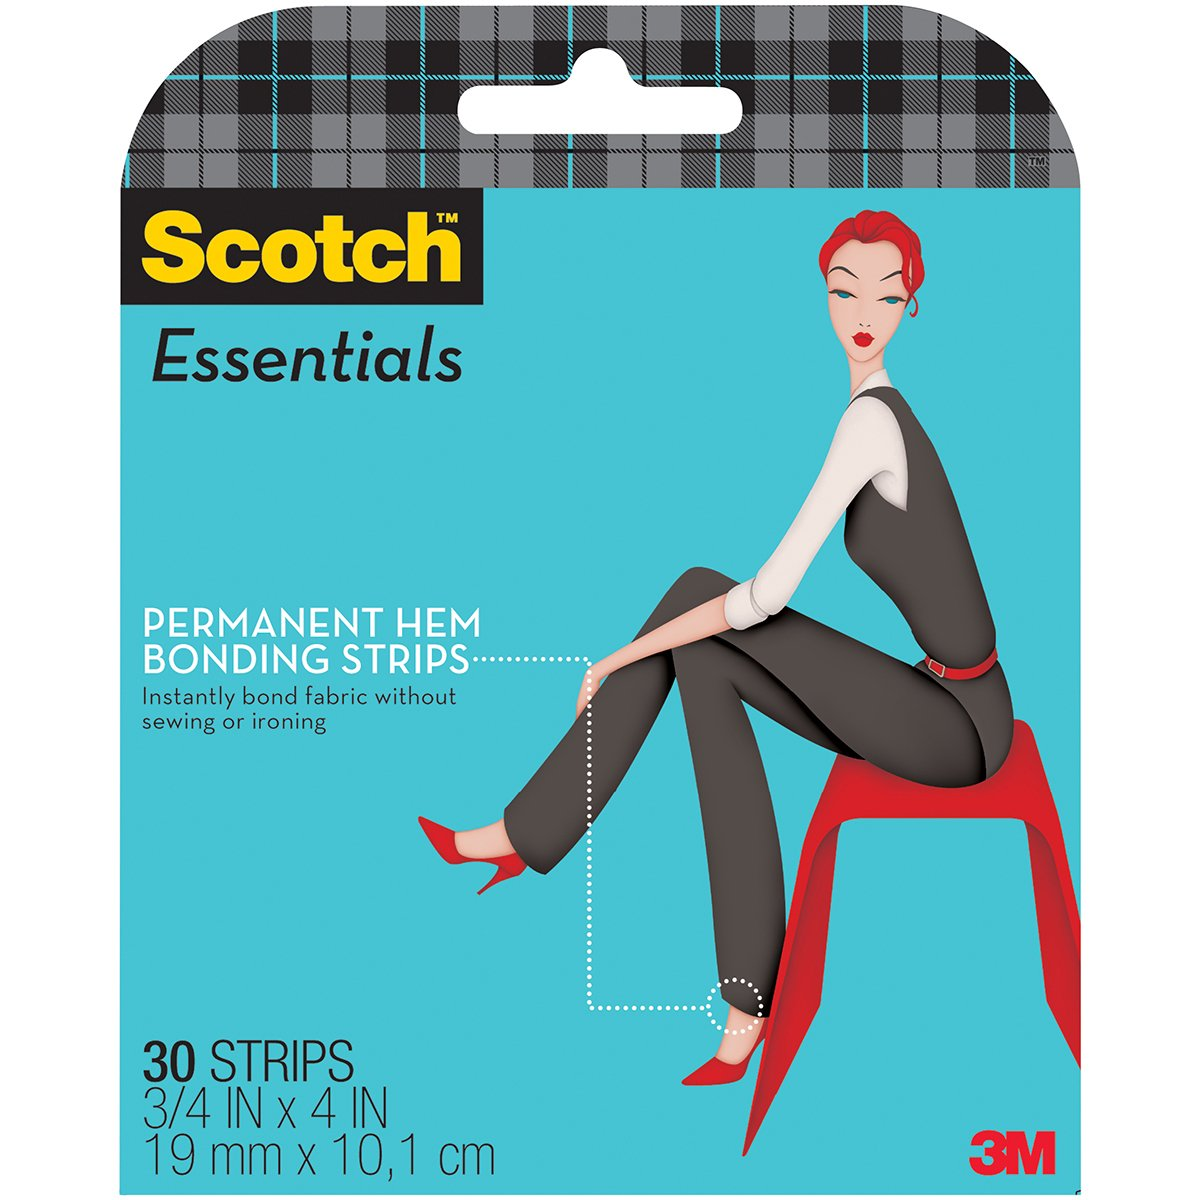 Scotch 95187 Essentials Permanent Hem Bonding, 30 Strips